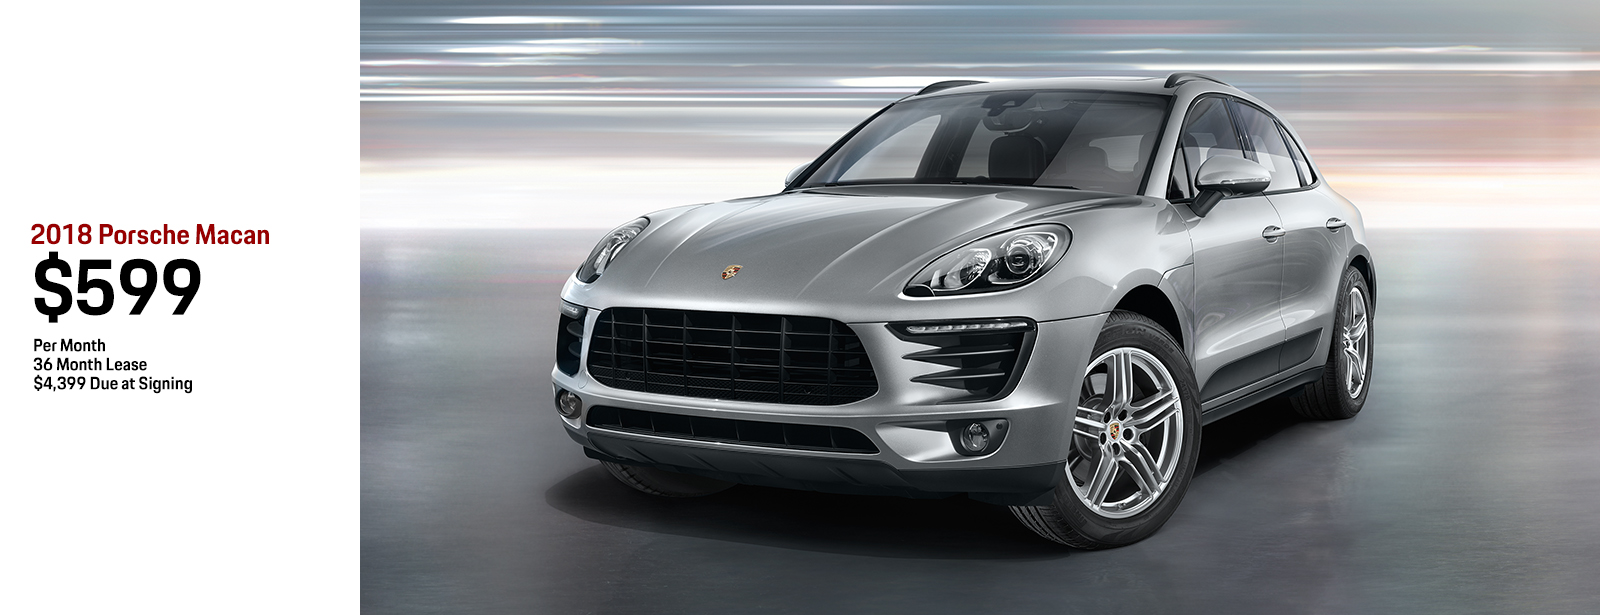 Lease a 2018 Porsche Macan for a Low Monthly Price in Chandler, AZ